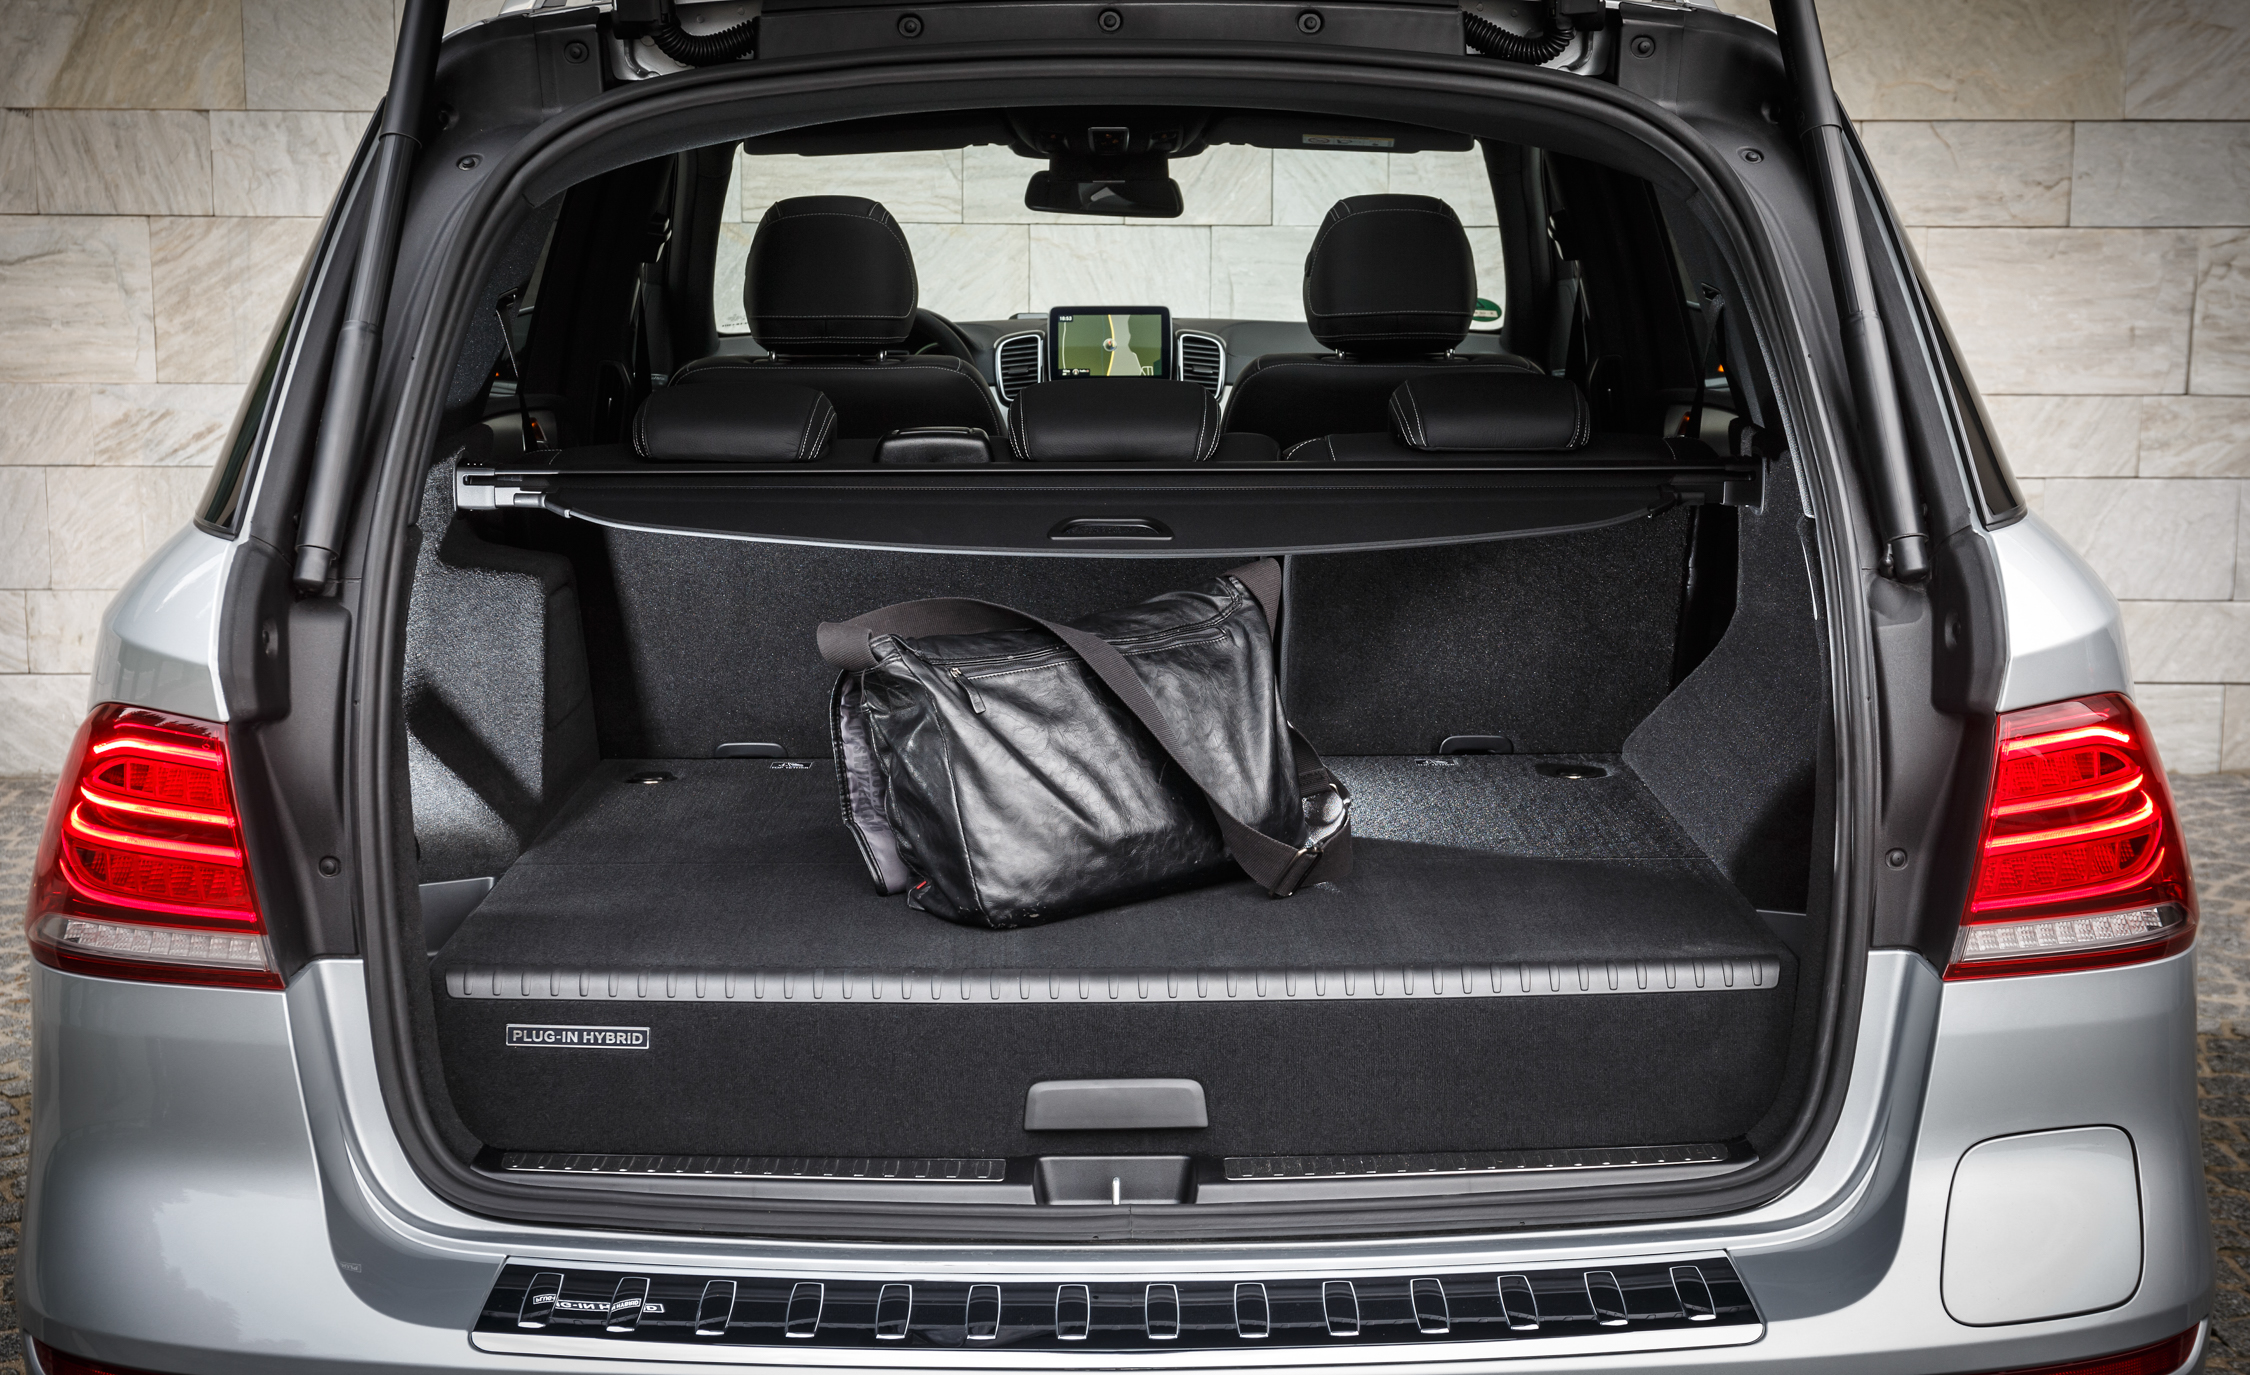 2016 Mercedes-Benz GLE500e 4MATIC Interior Cargo Space